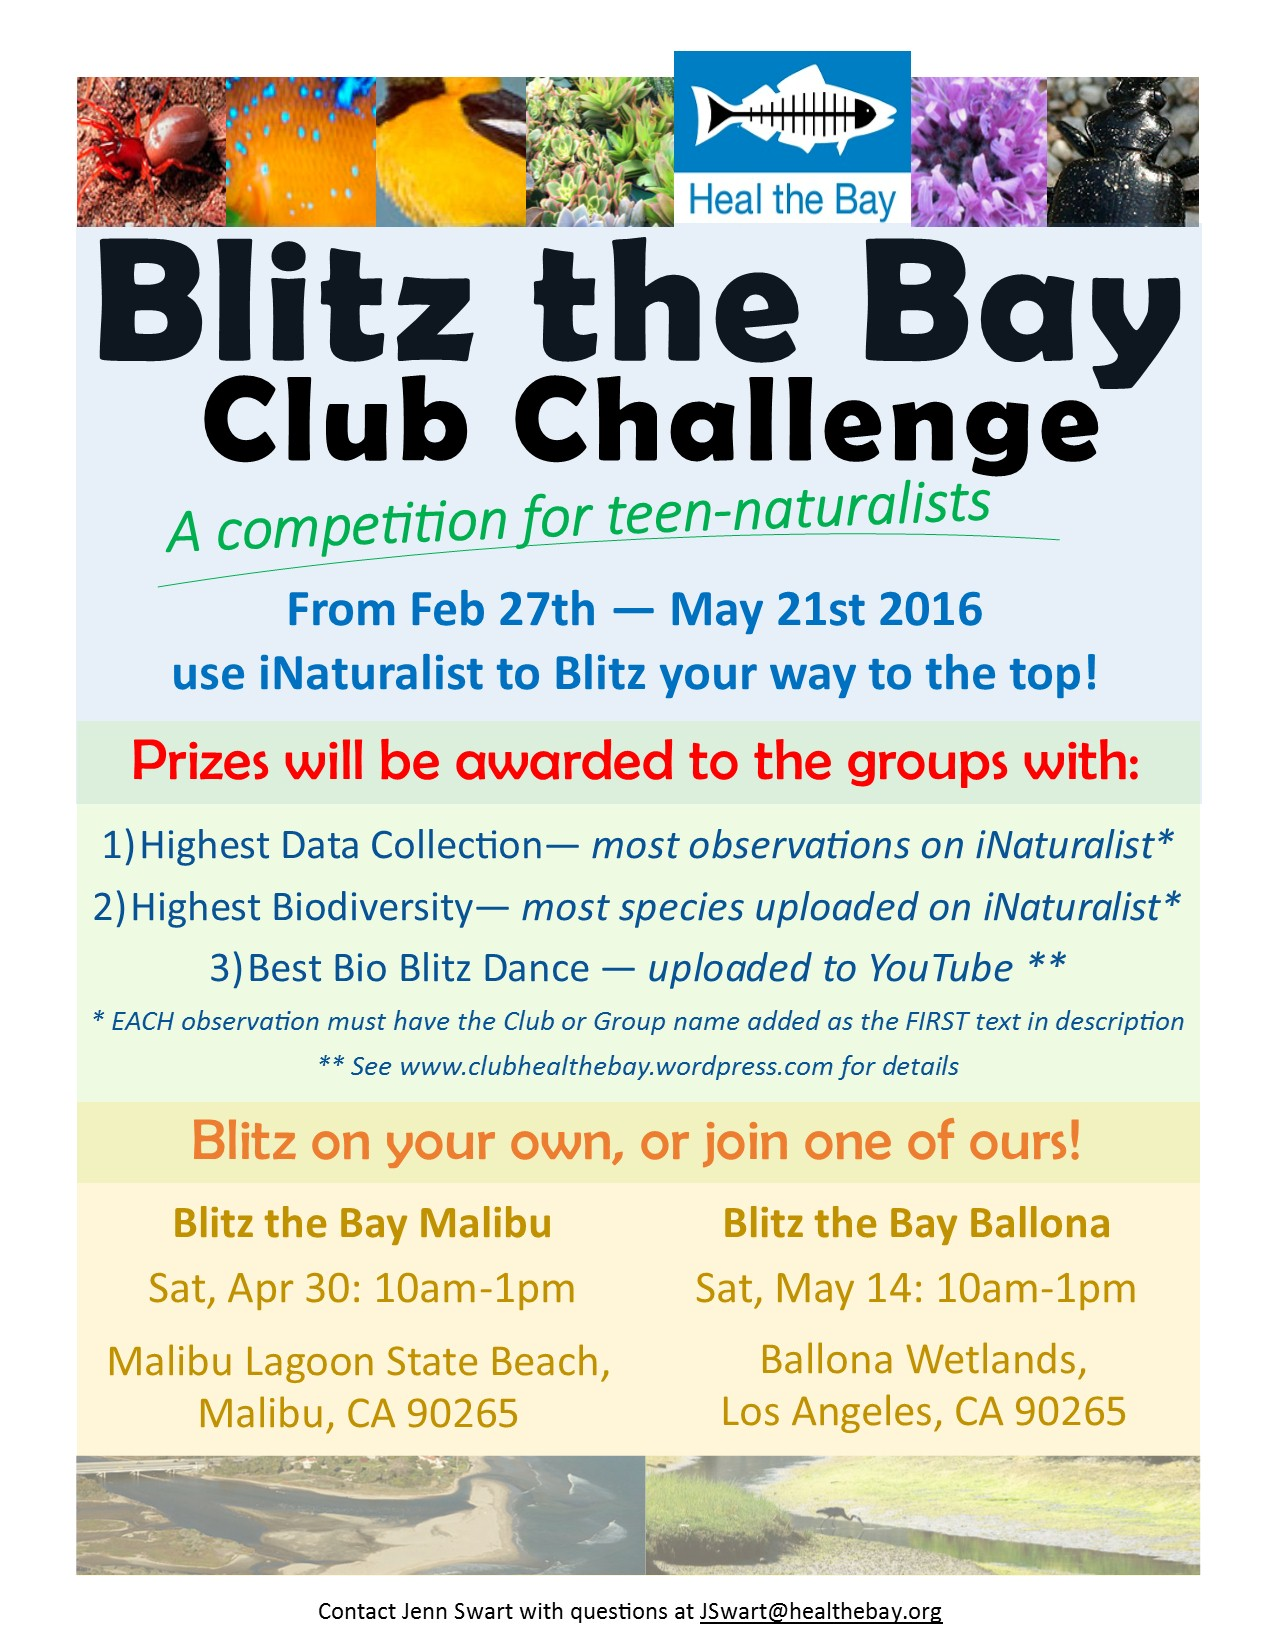 Blitz the Bay Club Challenge | Club Heal the Bay